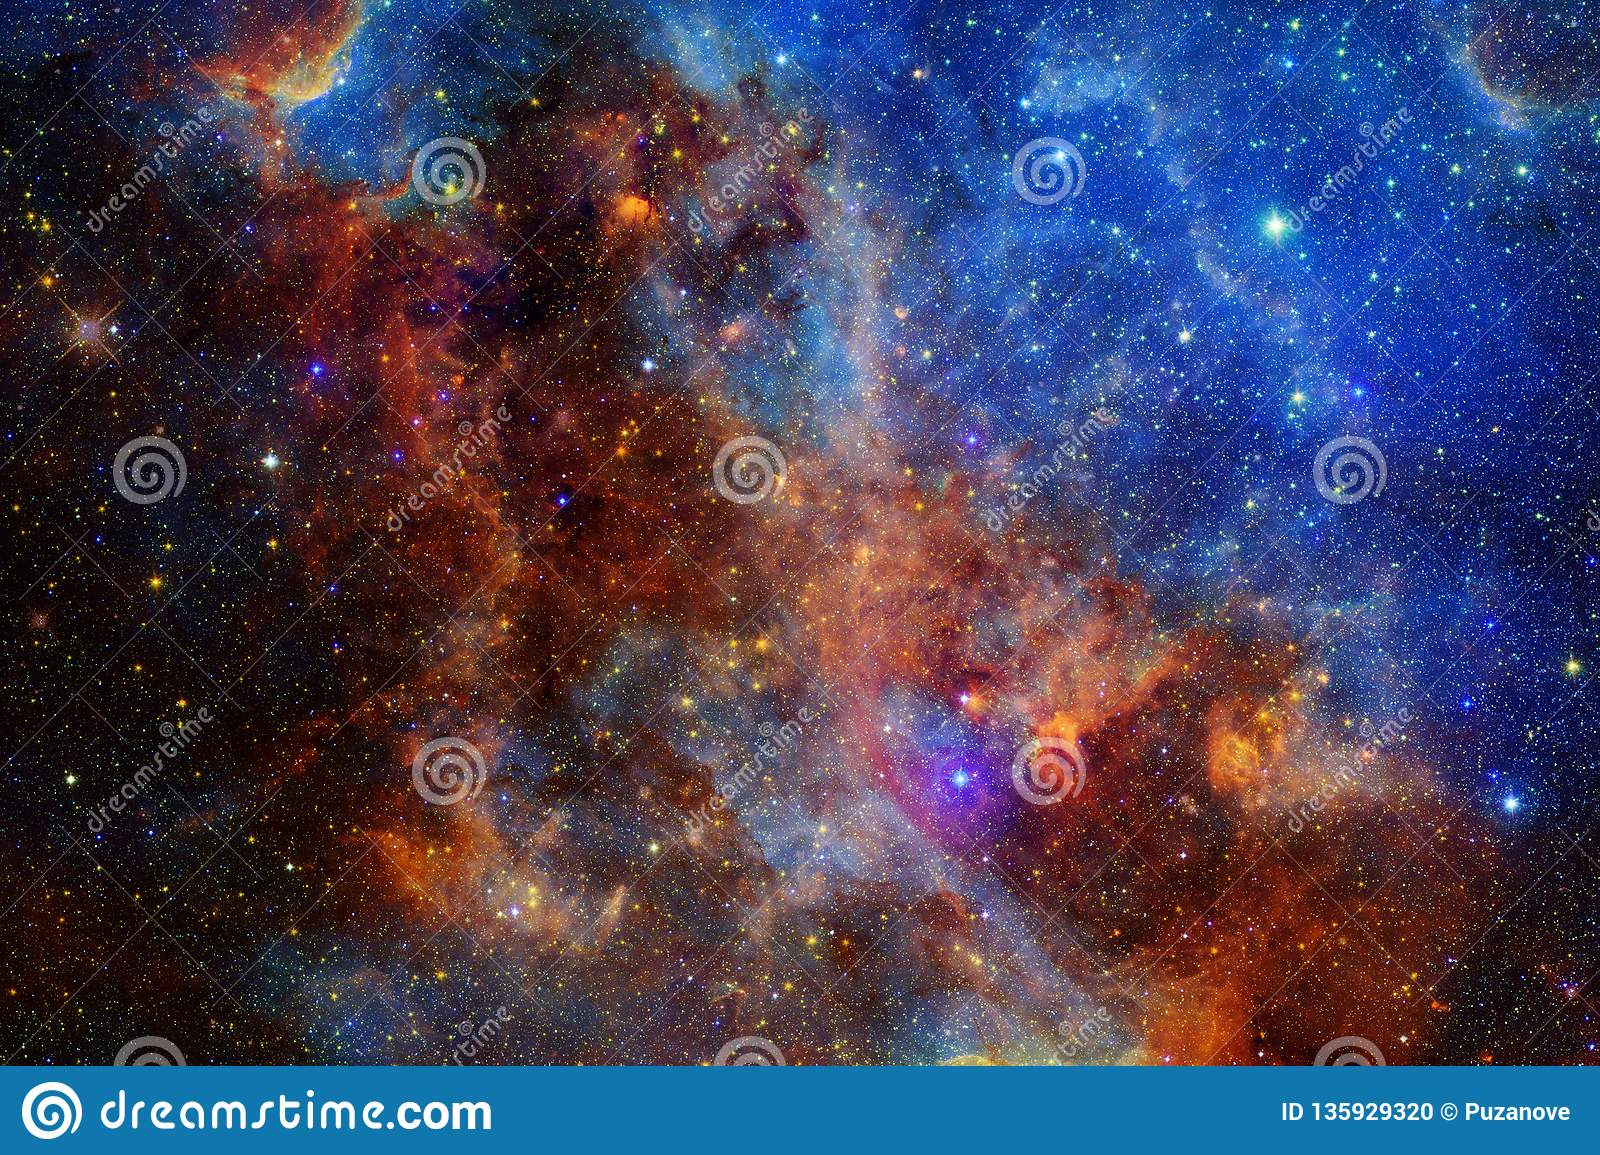 Beautiful nebula and bright stars in outer space, glowing mysterious universe